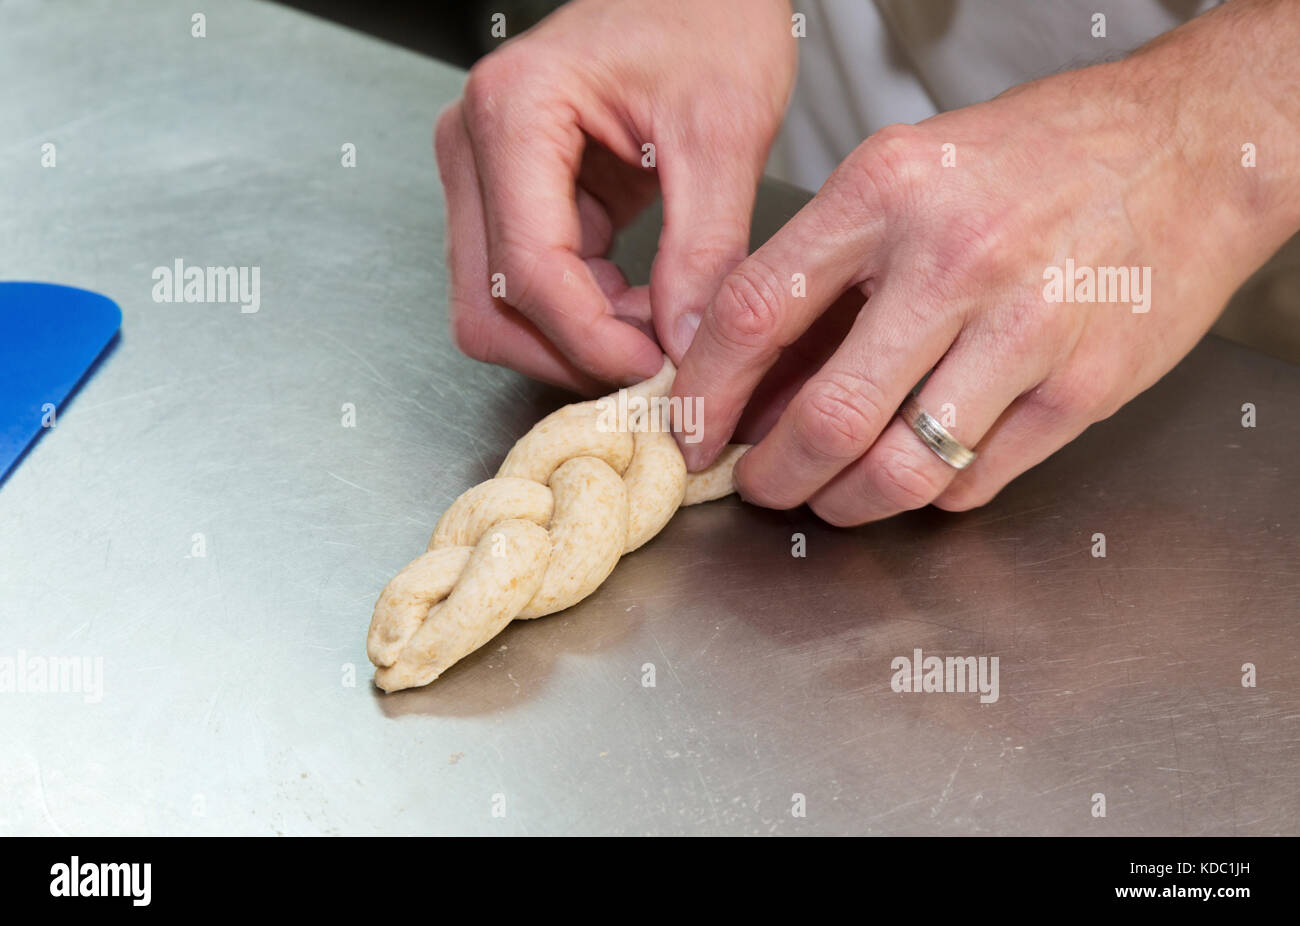 Bread making - making shaped bread rolls with dough, UK - Stock Image